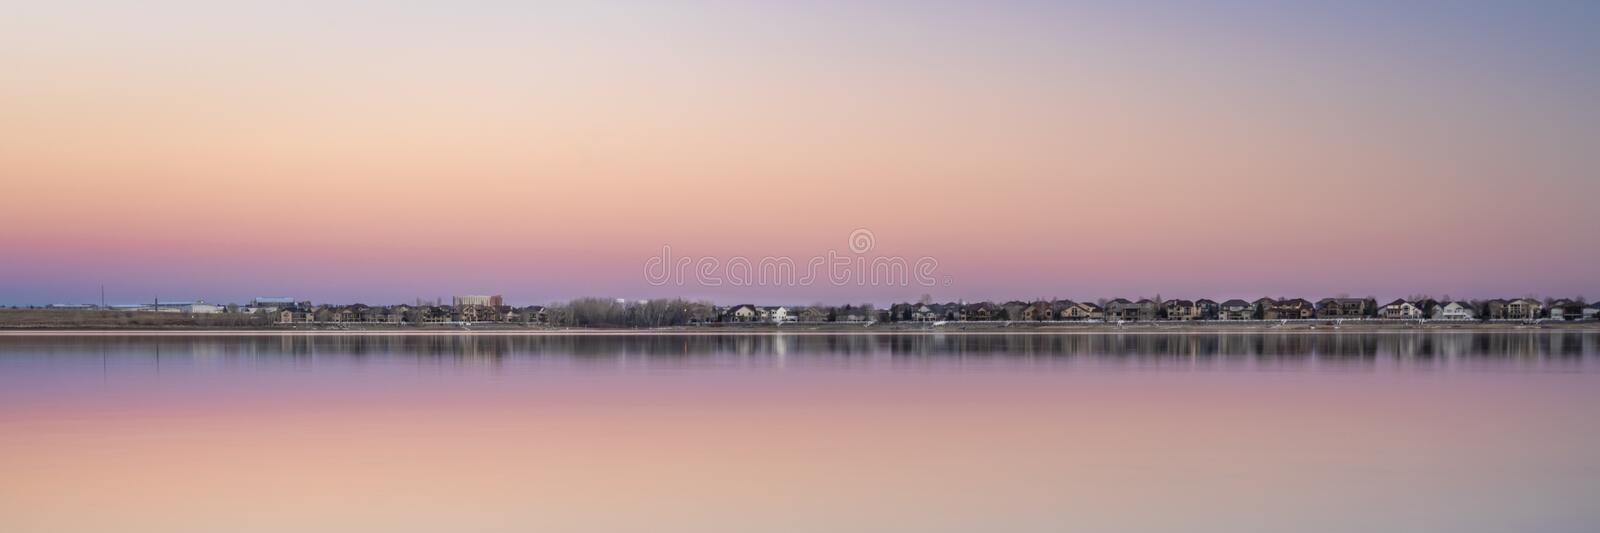 Dusk over lake in Colorado. Boy Lake State Park panorama royalty free stock photography